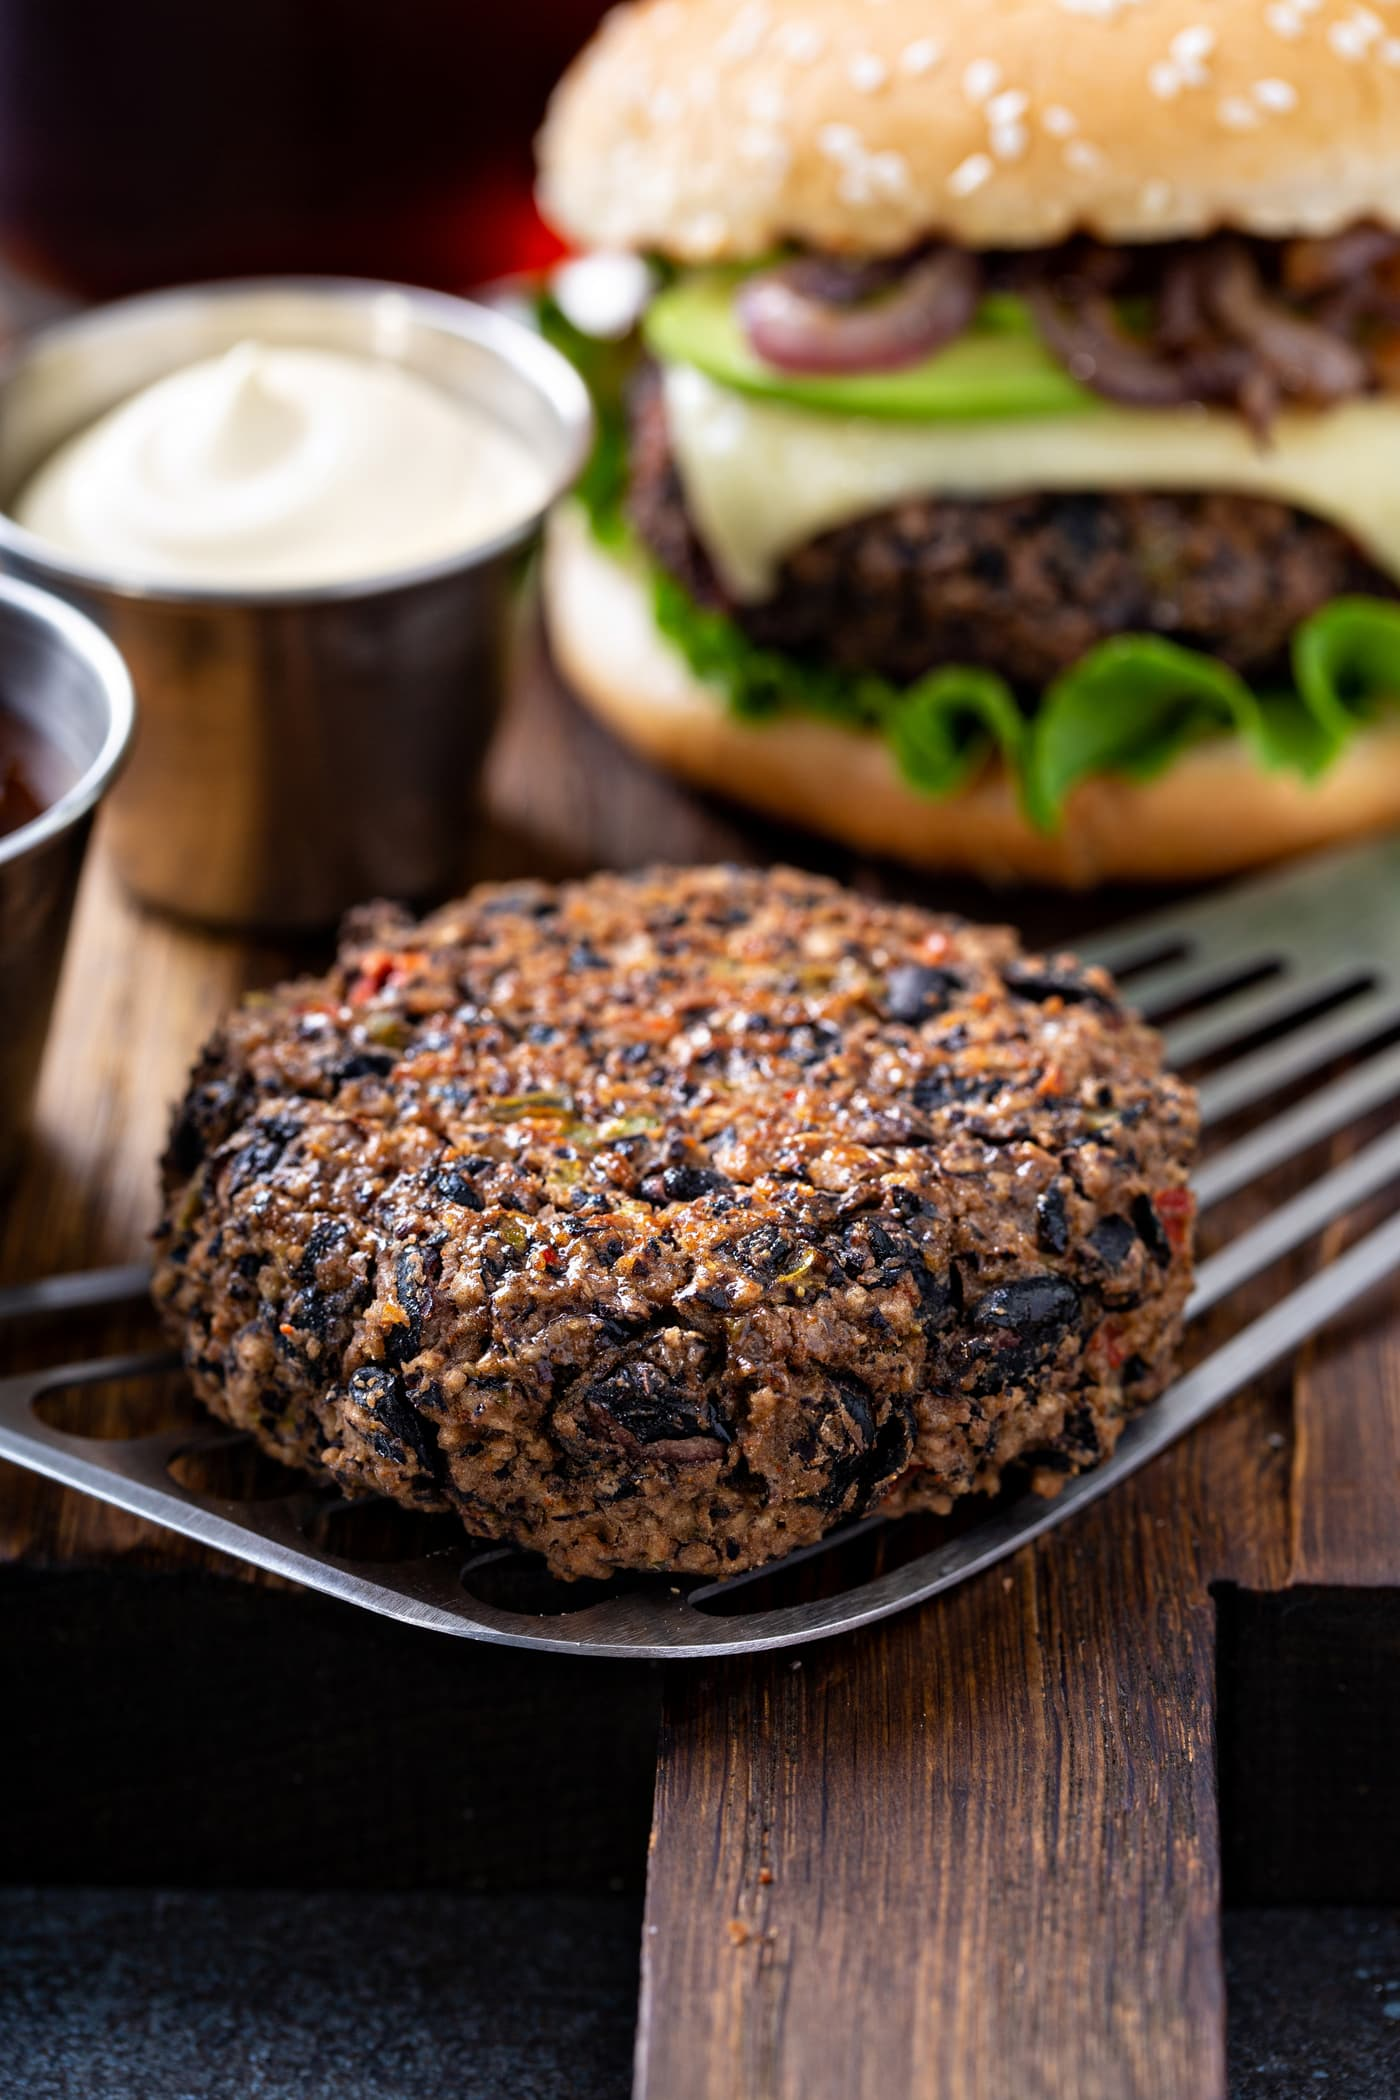 A cooked black bean burger patty on a spatula with a small cup of mayo in the background and a burger on a sesame seed bun dressed with lettuce, cheese, avocado and onions.